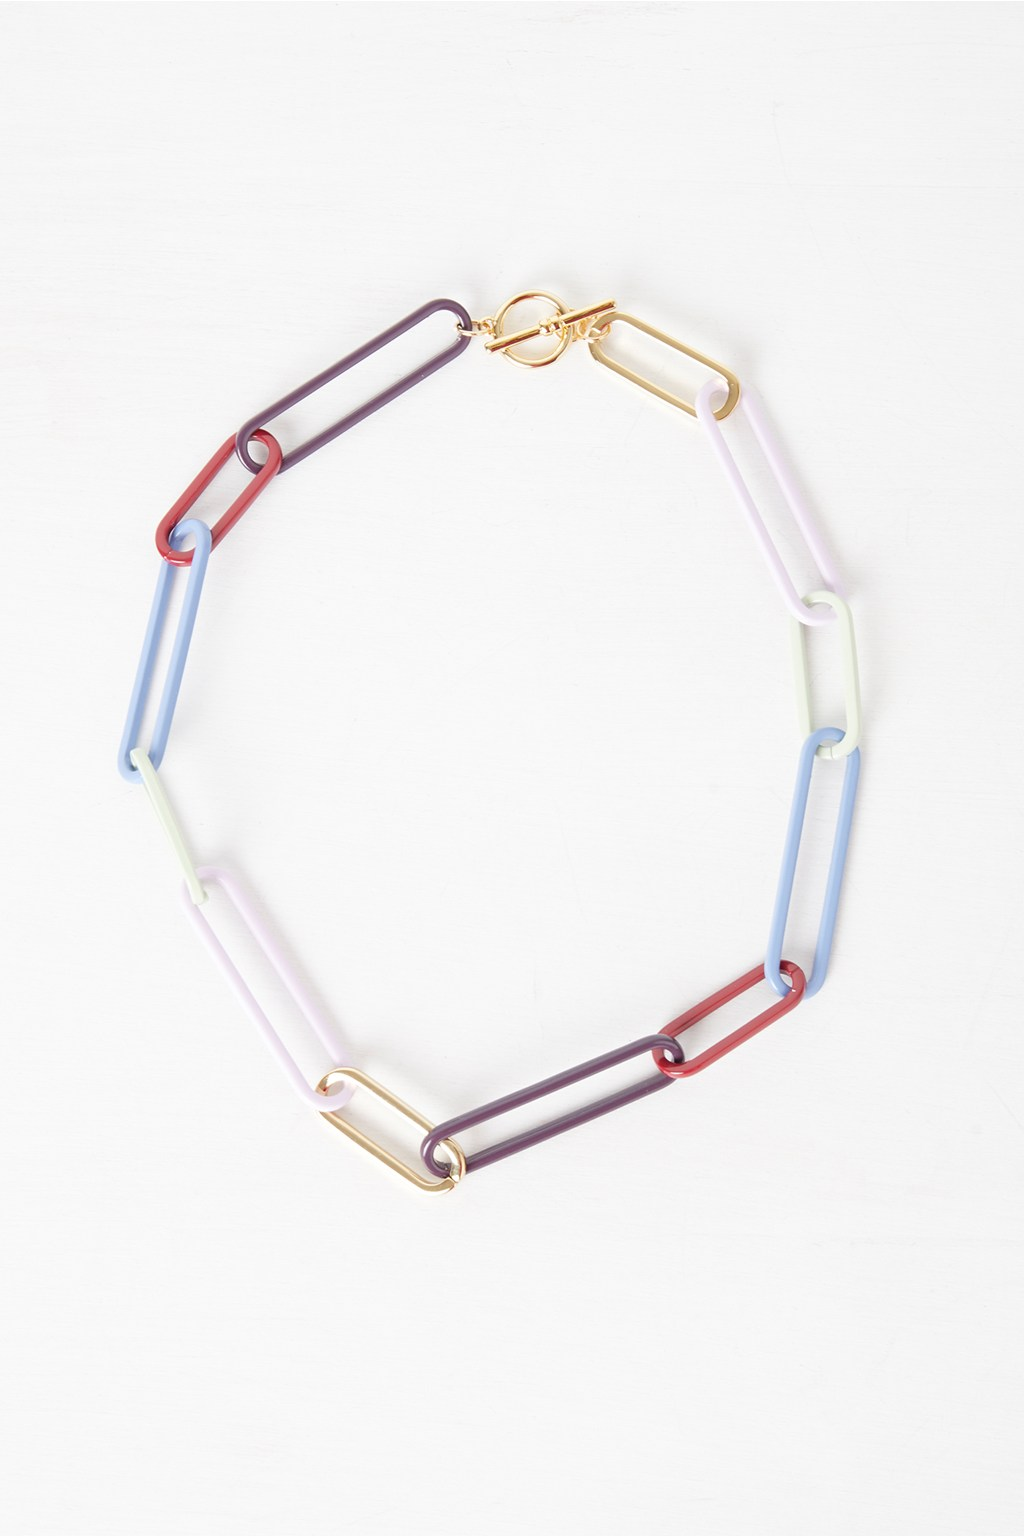 sjman-womens-fr-goldmulti-colour-chain-necklace.jpg